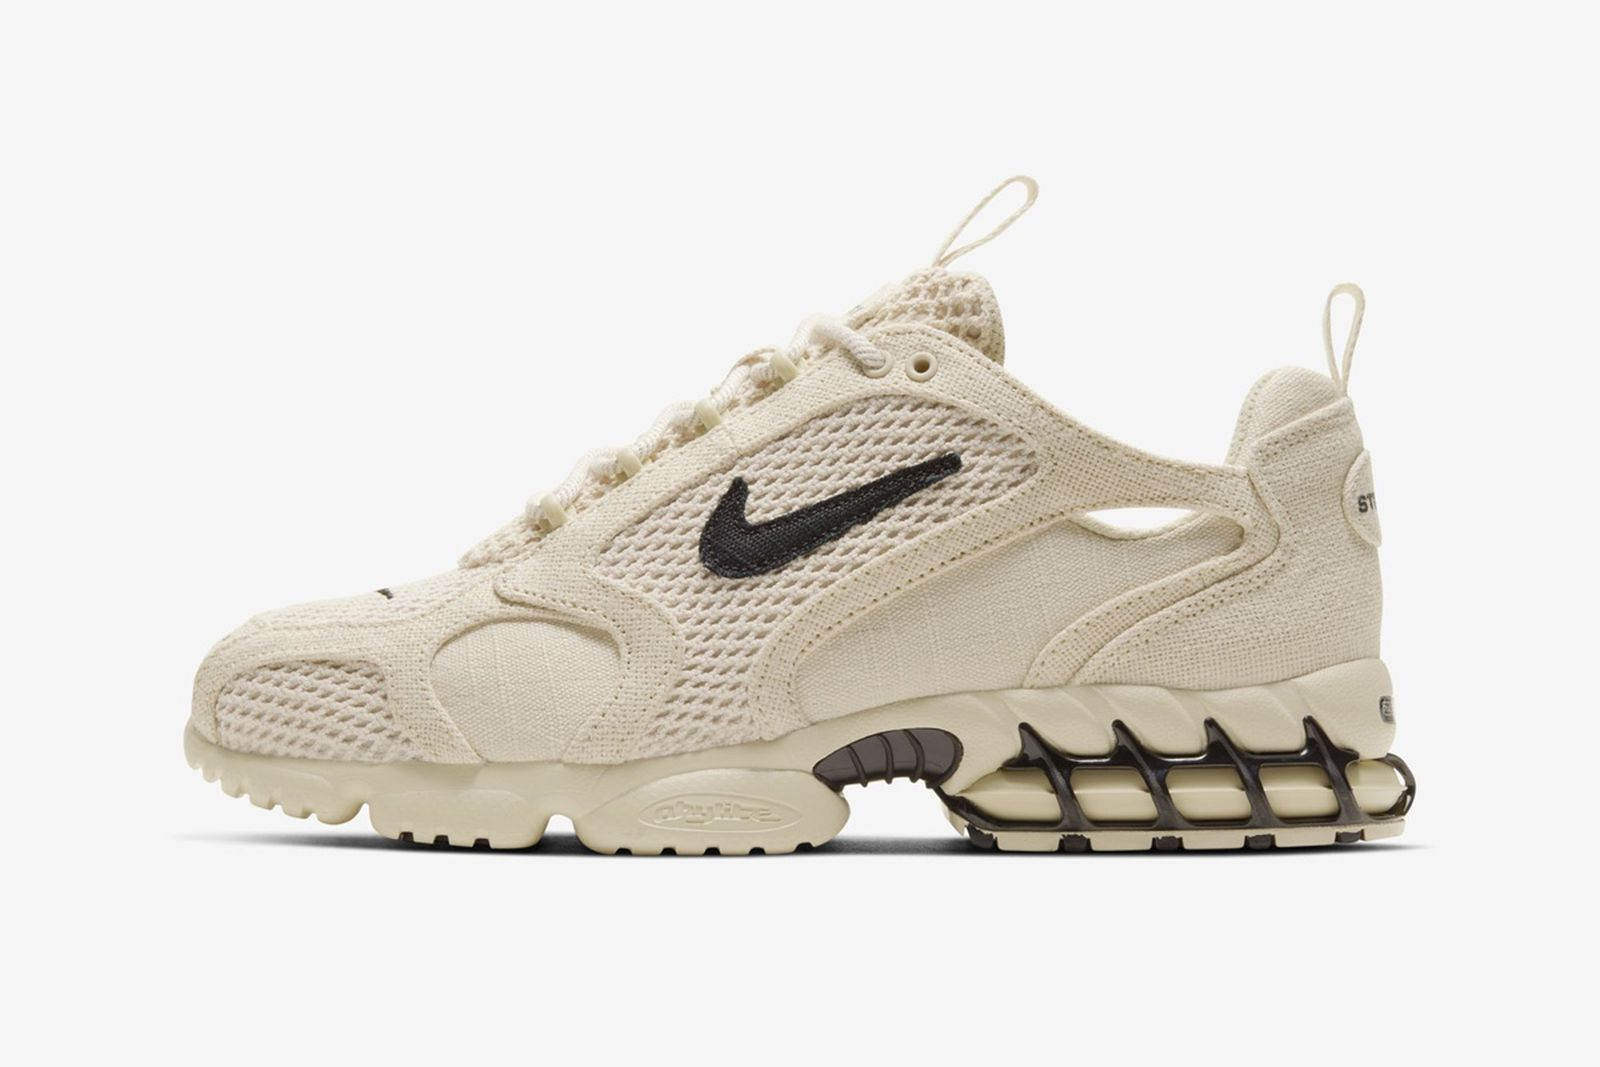 stussy-nike-zoom-spiridon-cage-2-release-date-price-03